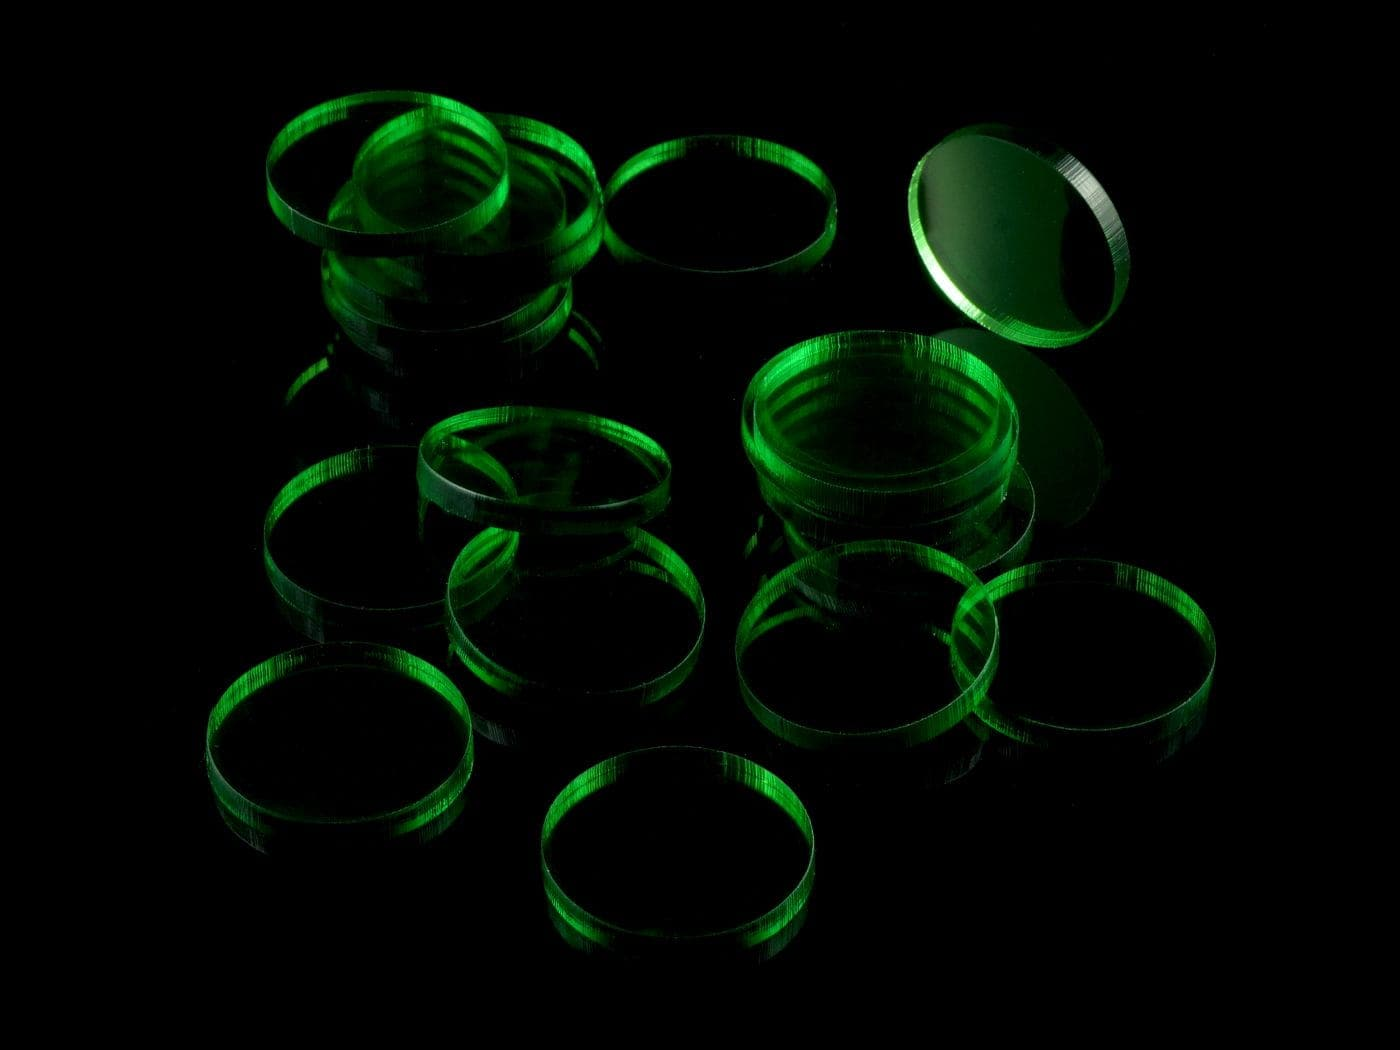 Acrylic miniature bases (20 pcs), round, clear, green, 25 x 3 mm - 2